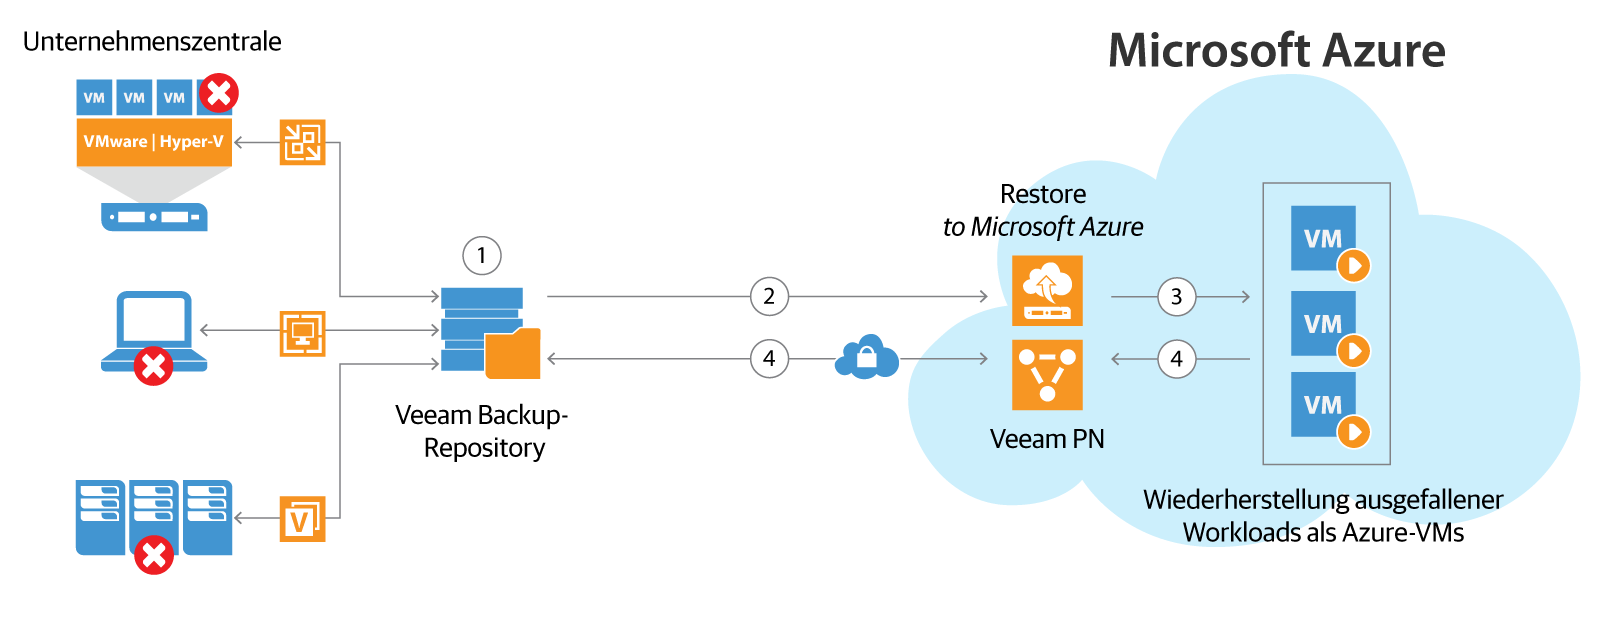 Veeam Disaster Recovery in Microsoft Azure kombiniert die Funktionalität von Veeam PN for Microsoft Azure (Veeam Powered Network) mit Direct Restore to Microsoft Azure für eine allumfassende On-Demand-DR in der Cloud. (Veeam PN = Veeam Powered Network; VPN = Virtual Private Network).